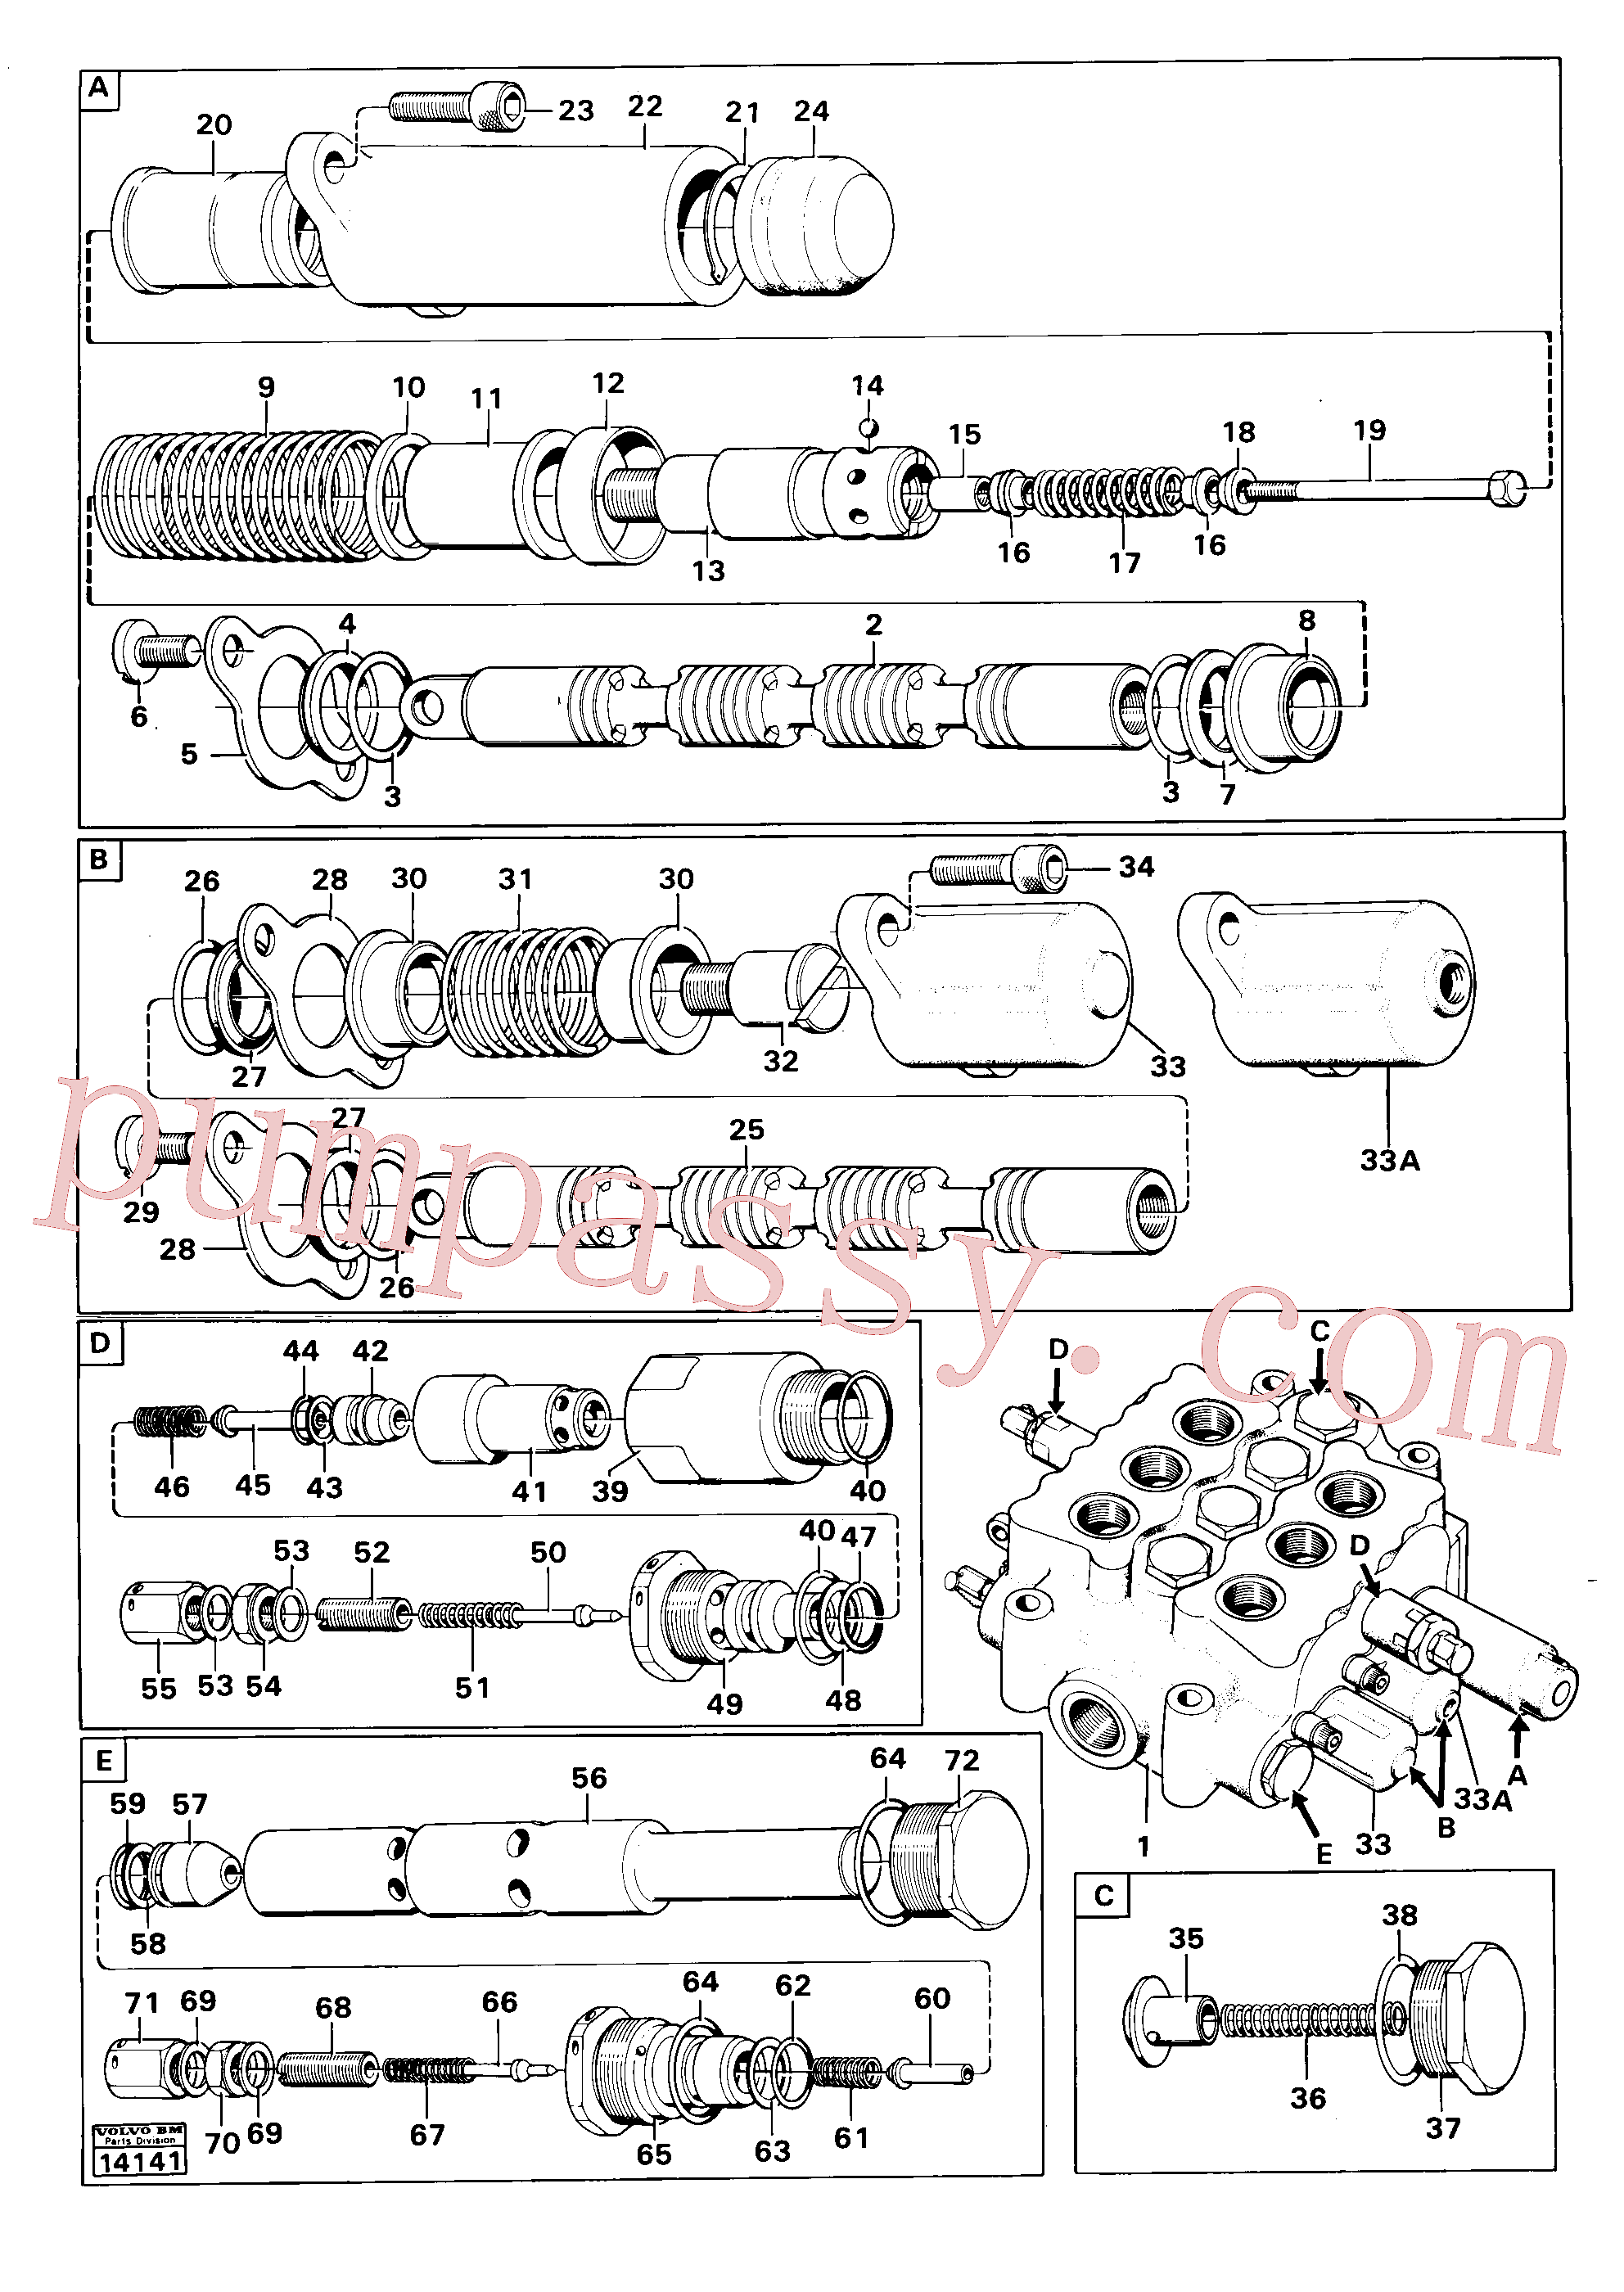 VOE956584 for Volvo Control valve.(14141 assembly)